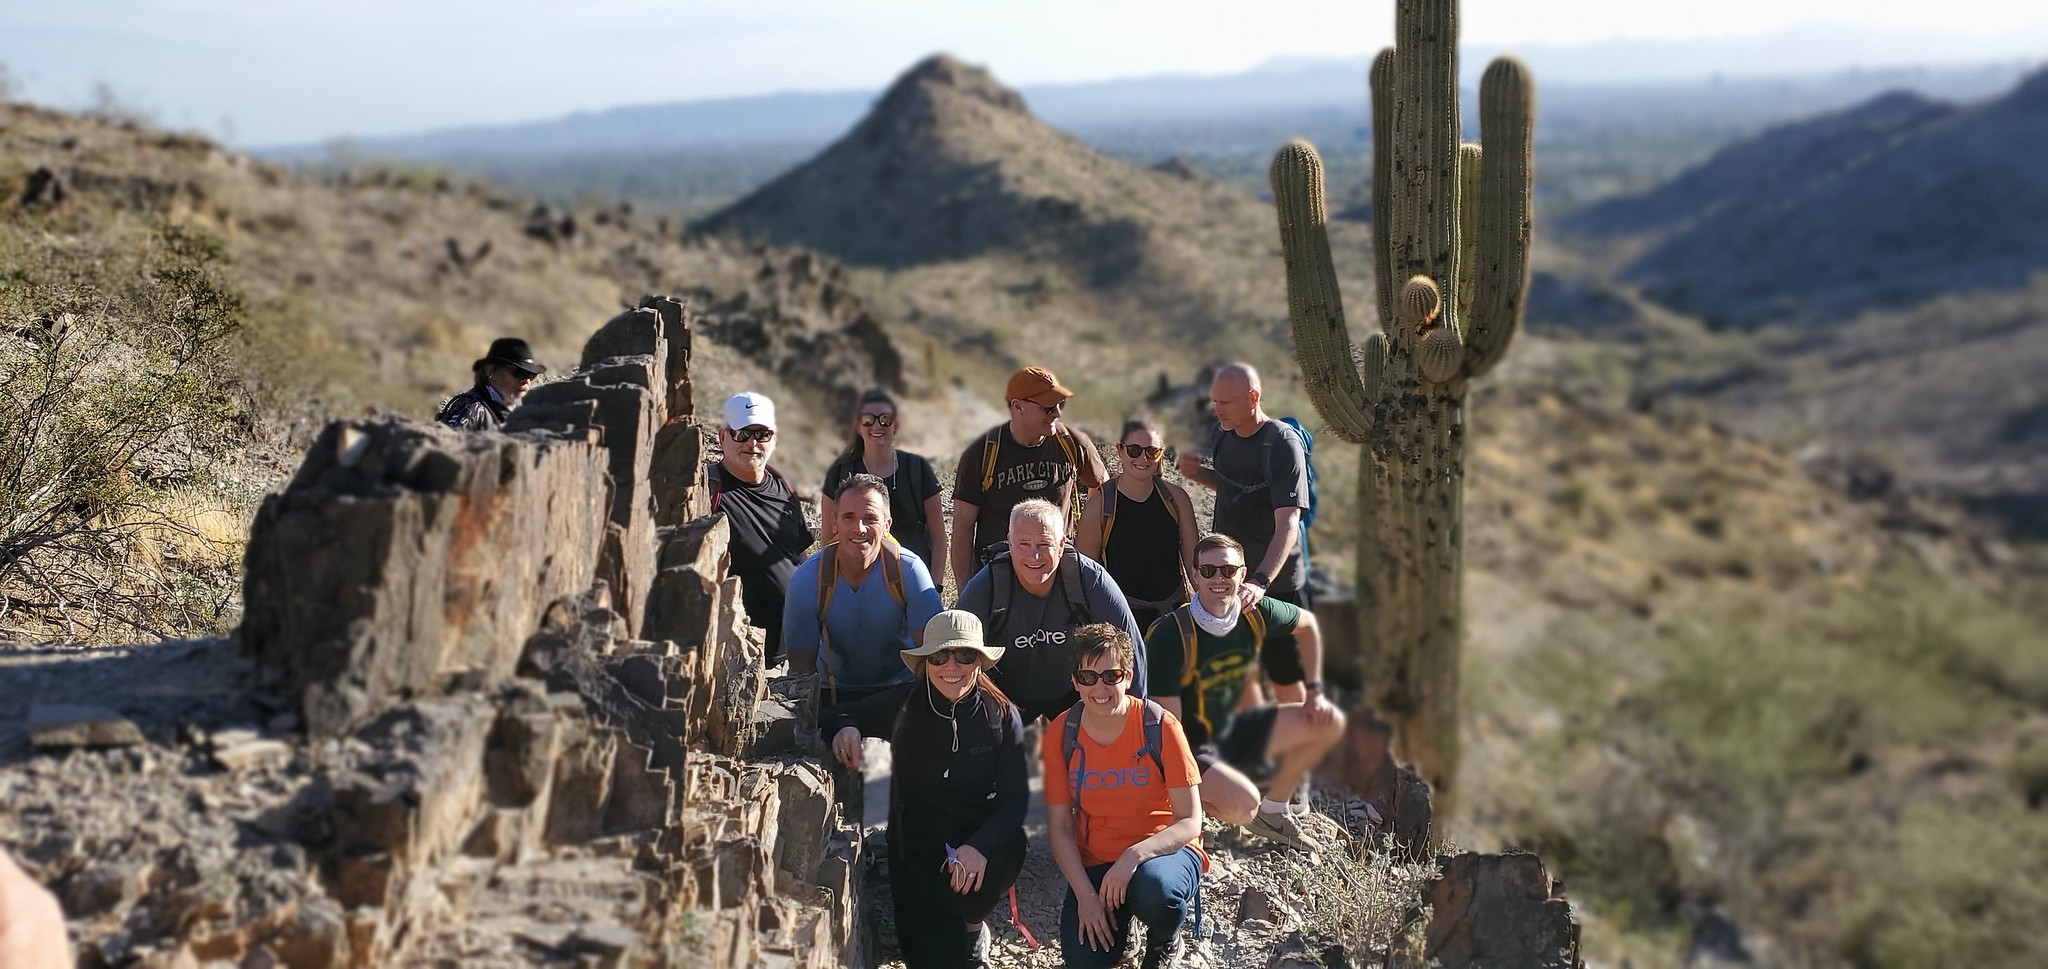 With an incredible desert vista as the backdrop, and a cactus looming over their shoulders, an early-morning summer hiking group pauses for a photo on a particularly picturesque part of their path.